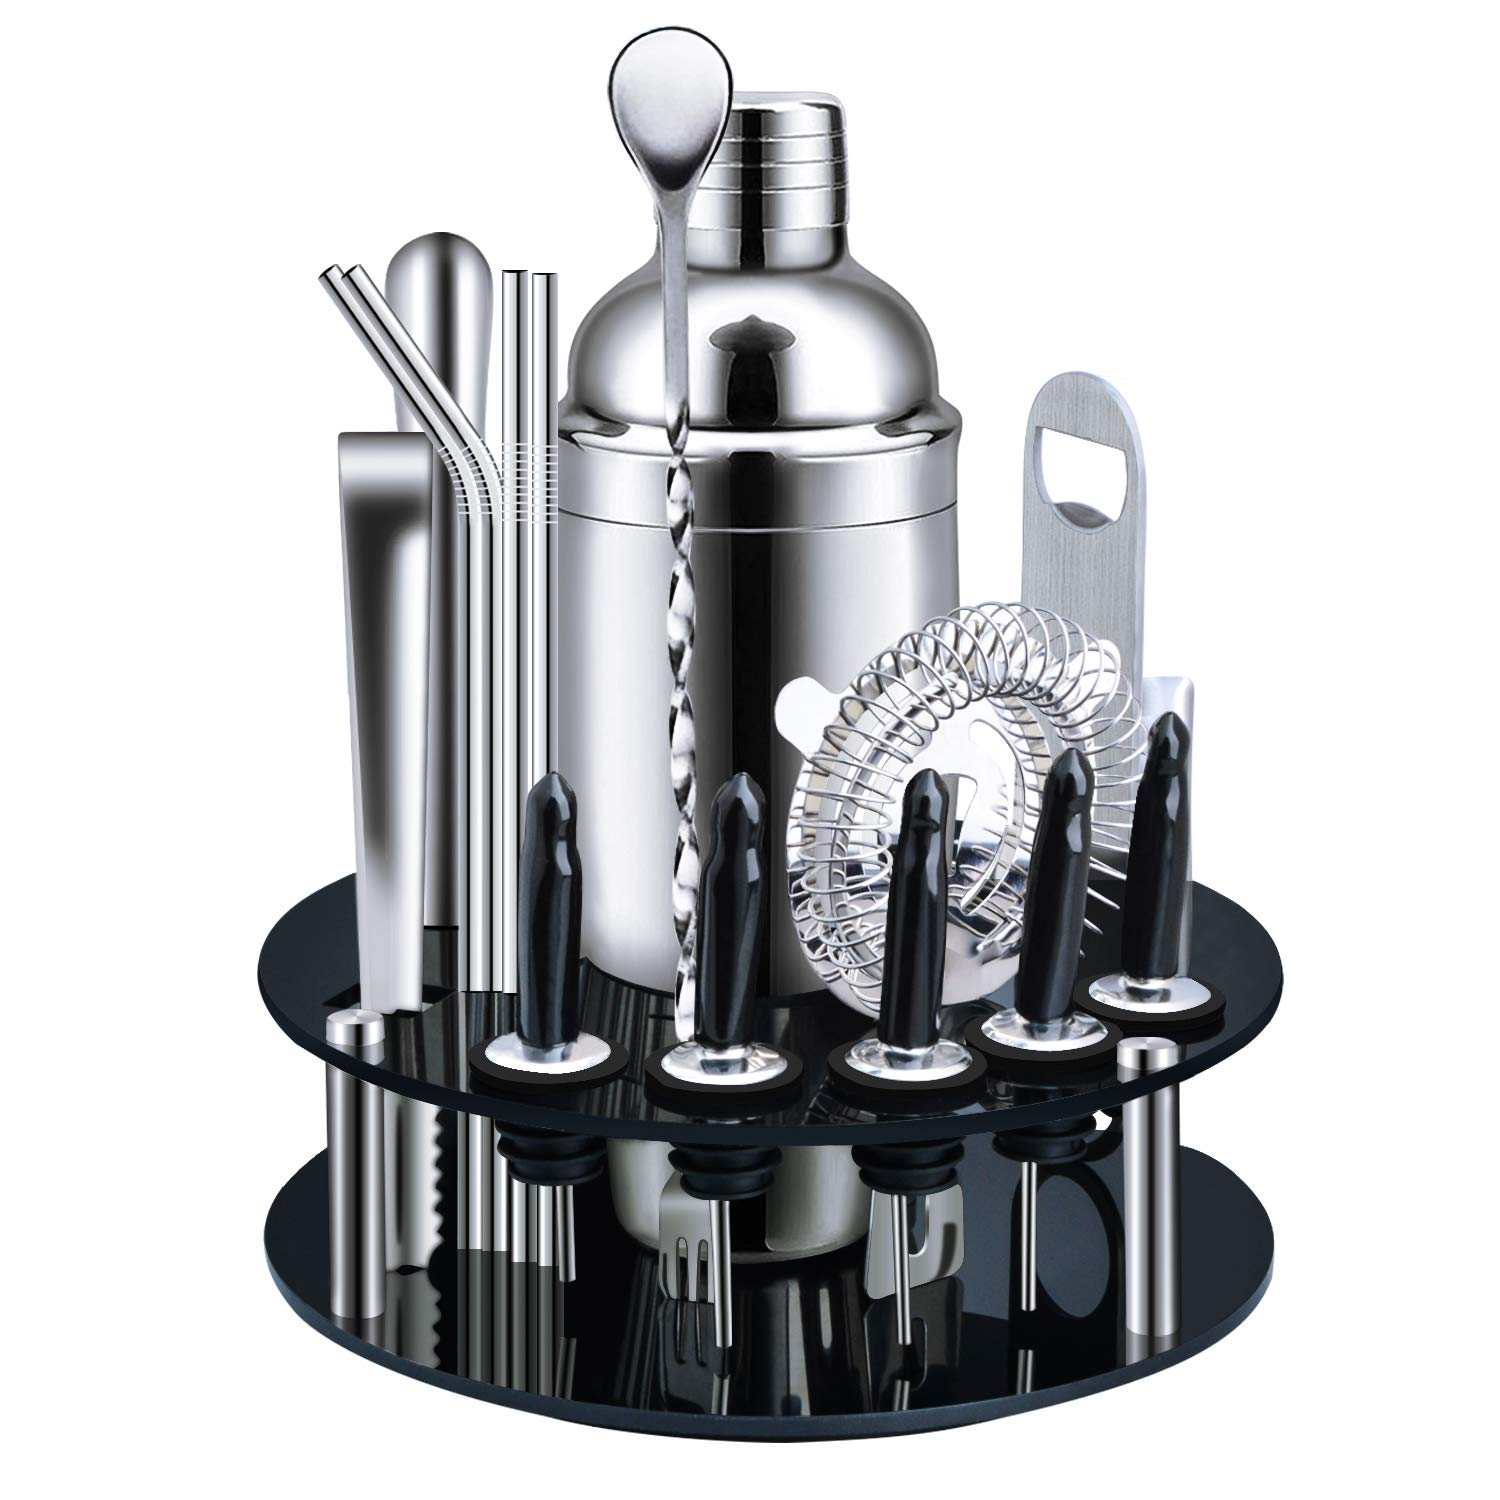 X-cosrack Bar Set,18-Piece Stainless Steel Cocktail Shaker Bar Tools,with Rotating Display Stand and Recipes Booklet,Premium Bartending Kit for Home,Bars,Traveling and Outdoor Parties by X-cosrack